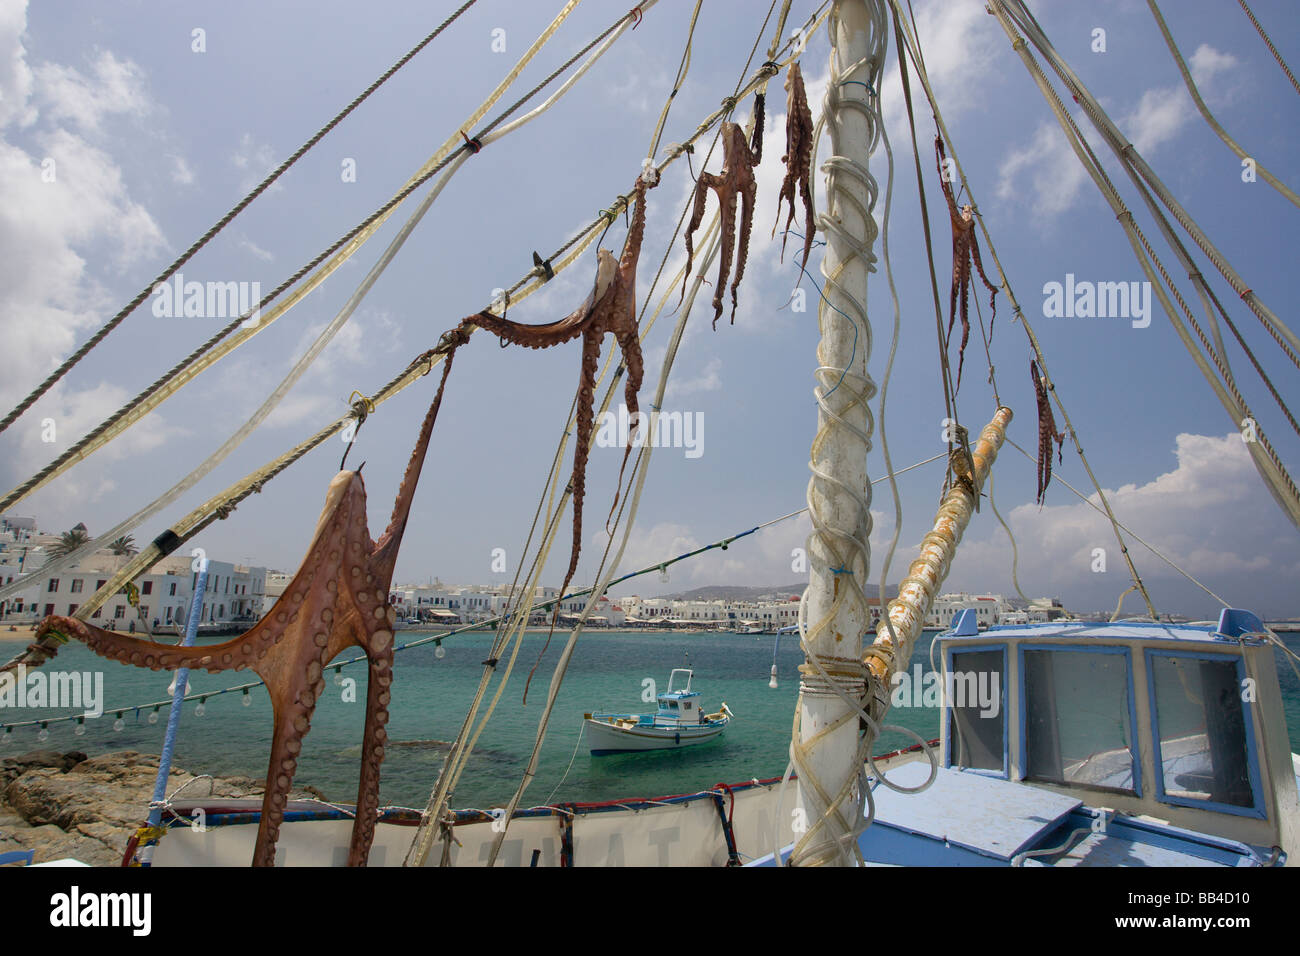 Europe, Greece, Mykonos, Hora. Octopi drying on the rigging of a boa with harbor in background. - Stock Image